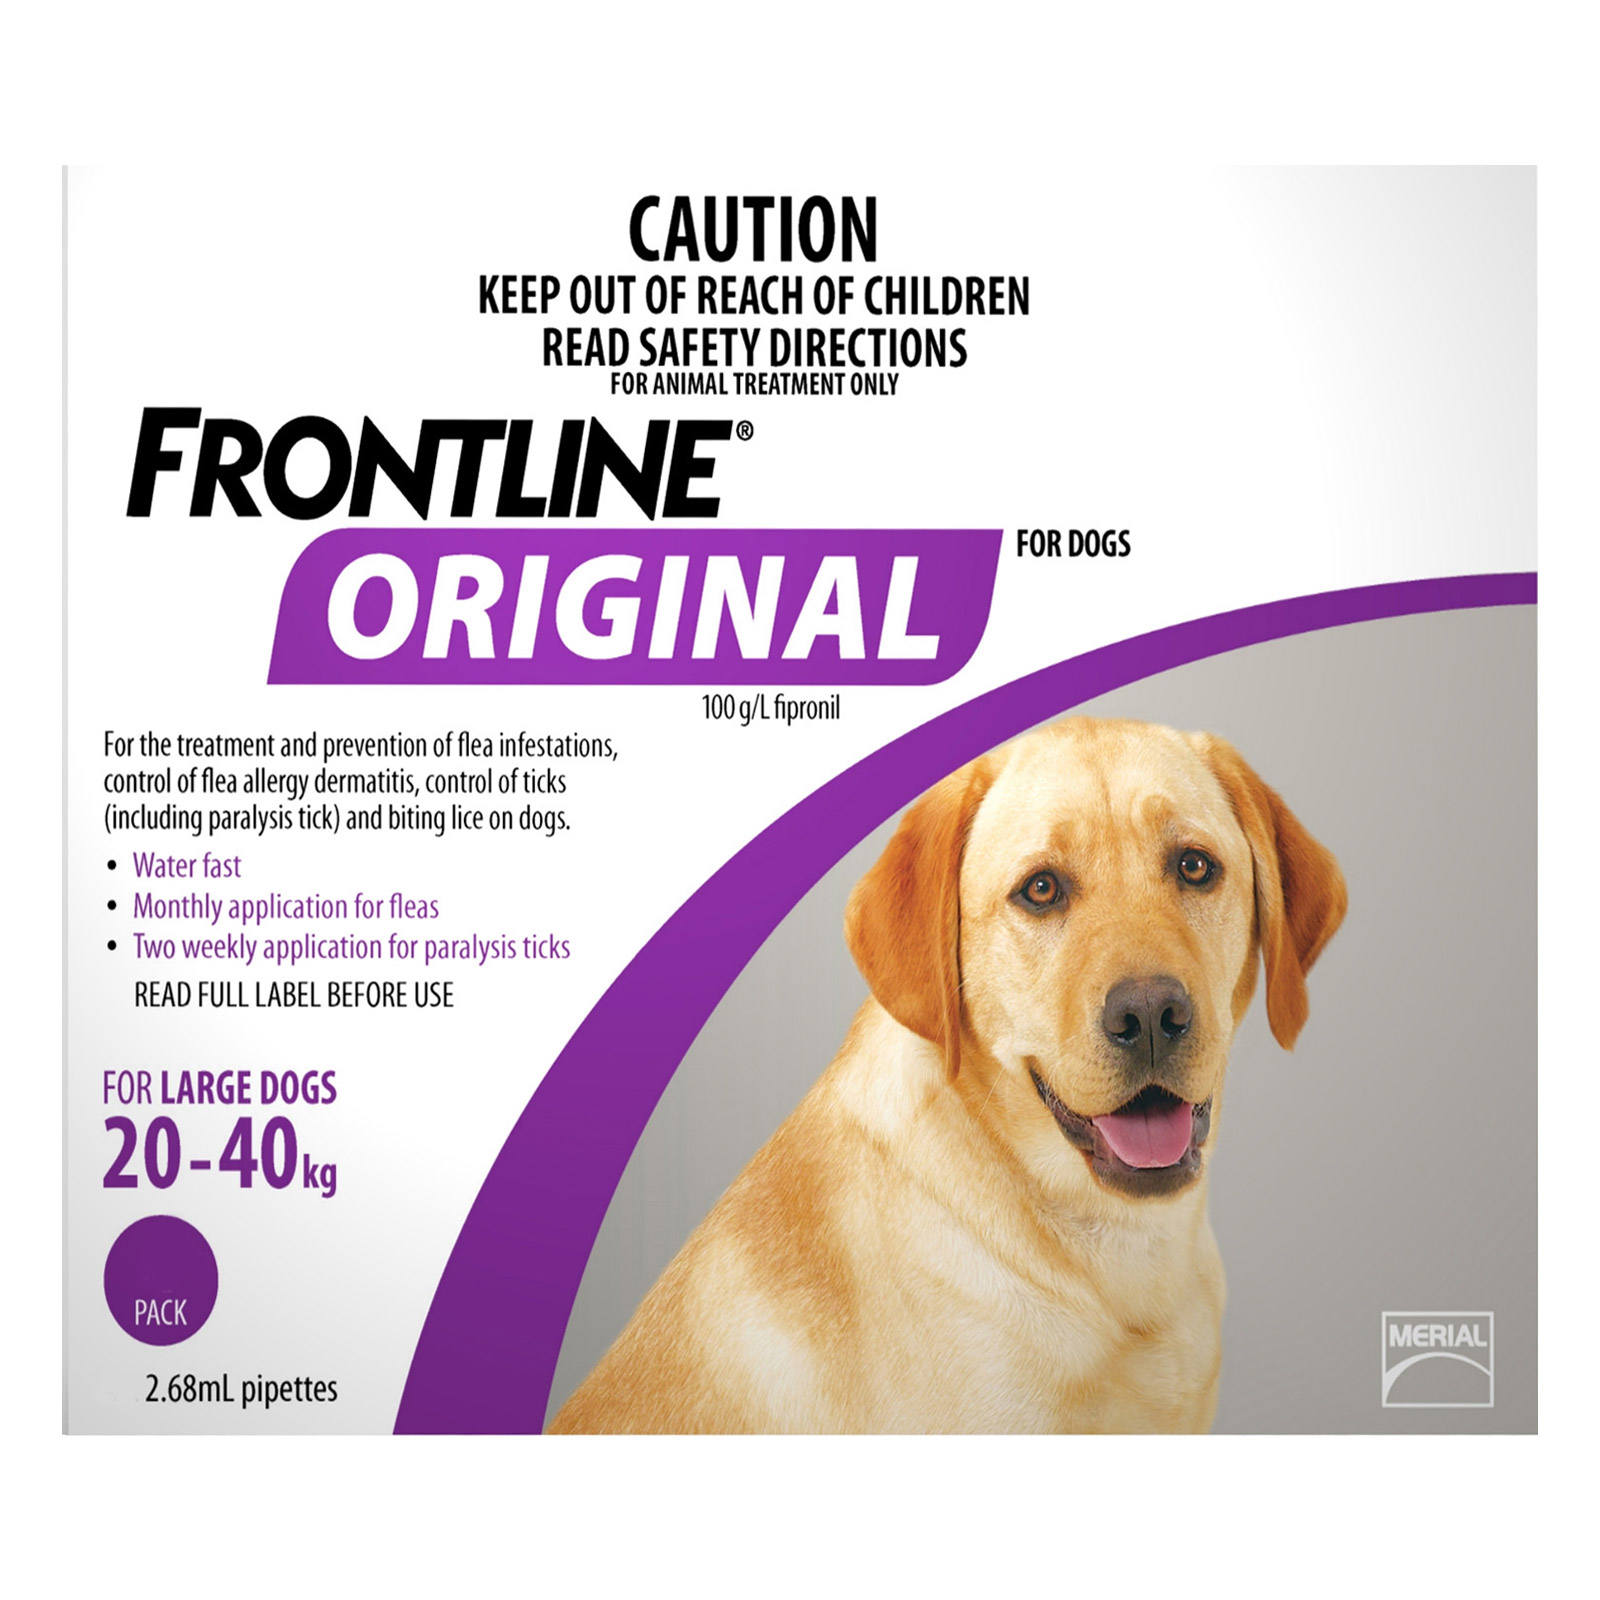 For Large Dogs 20-40 Kg (Purple)